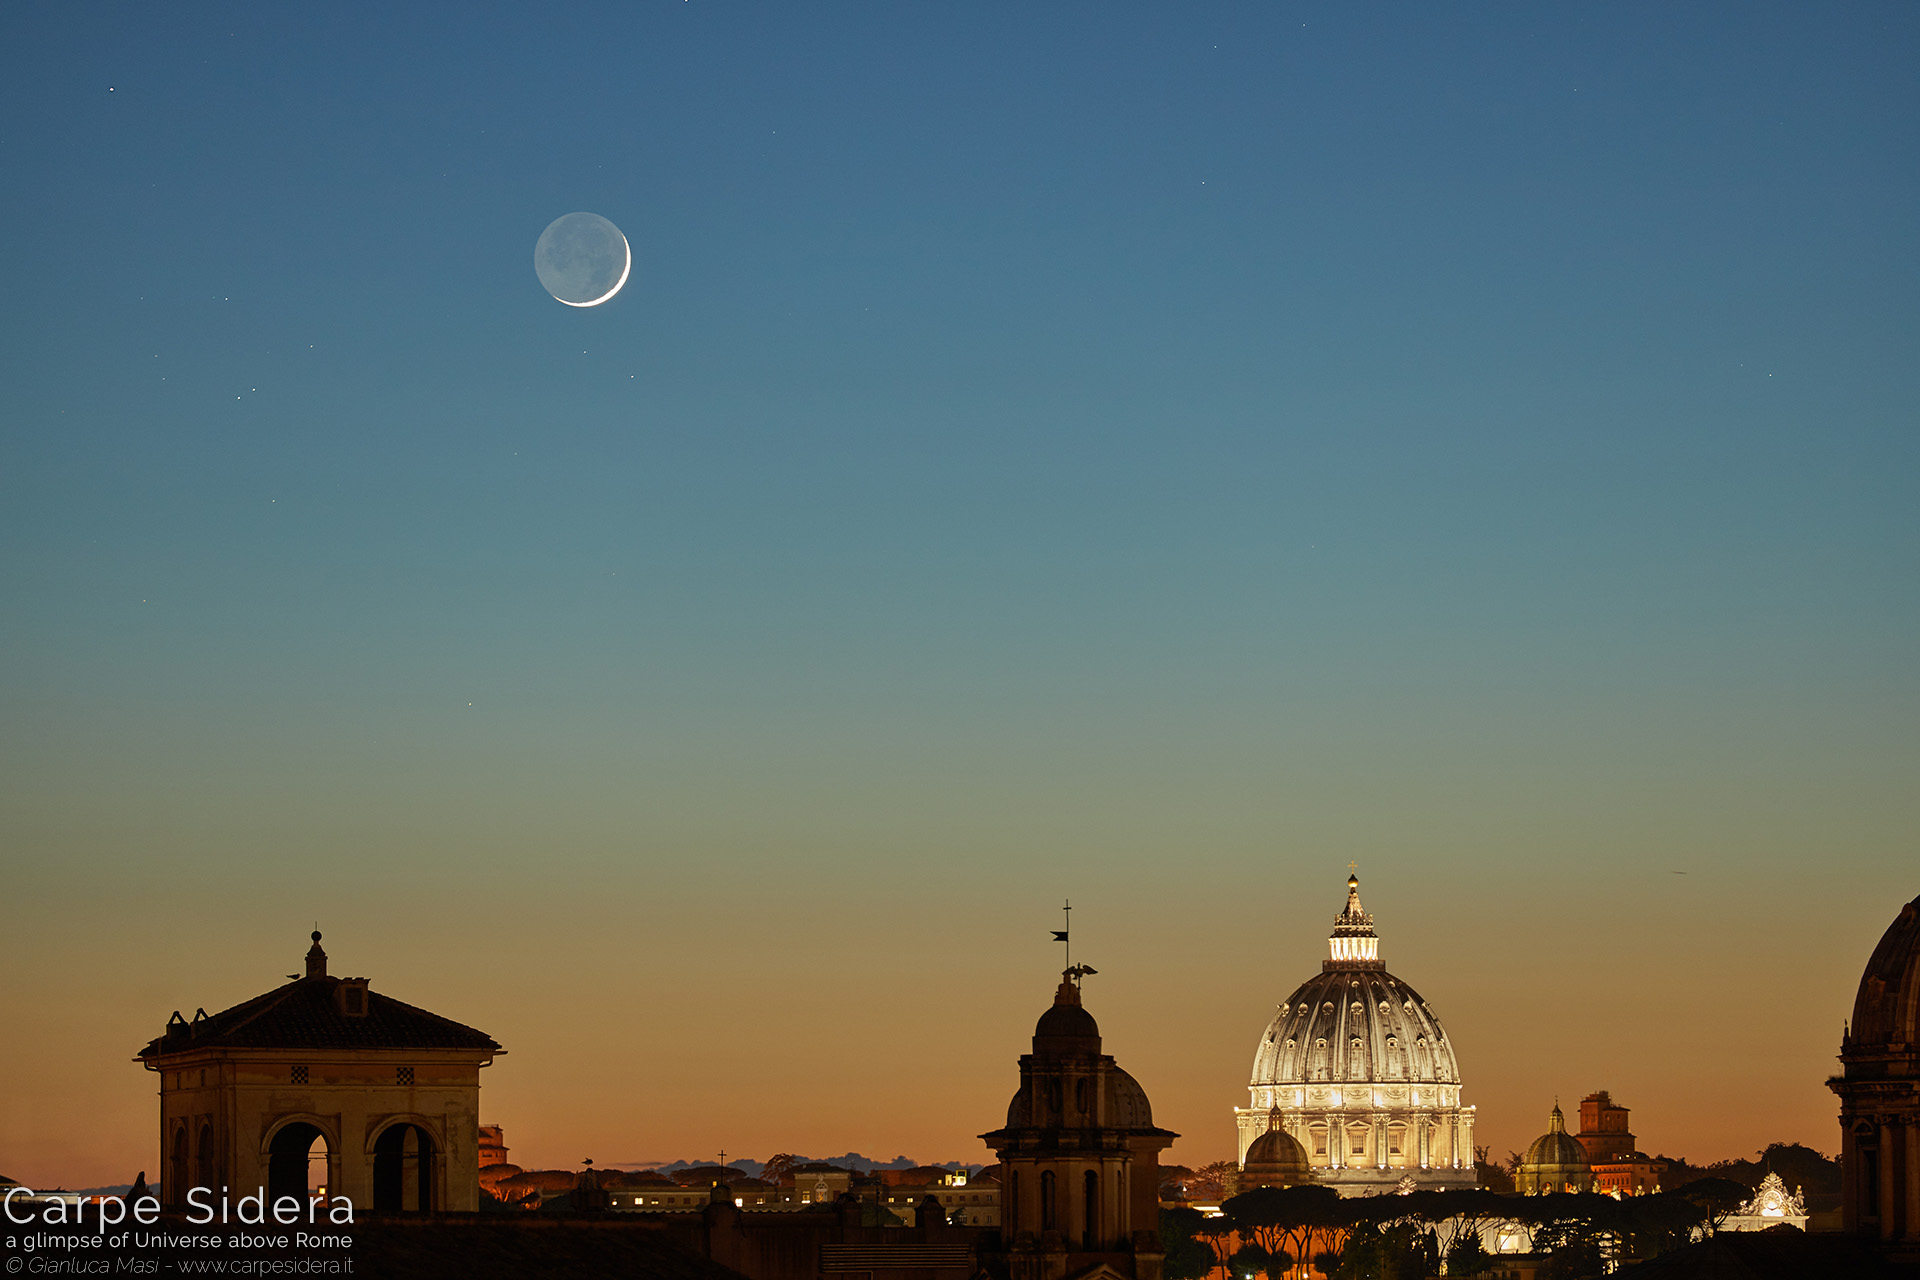 13. Moon crescent and Earthshine at sunset, above the dome of St. Peter's.